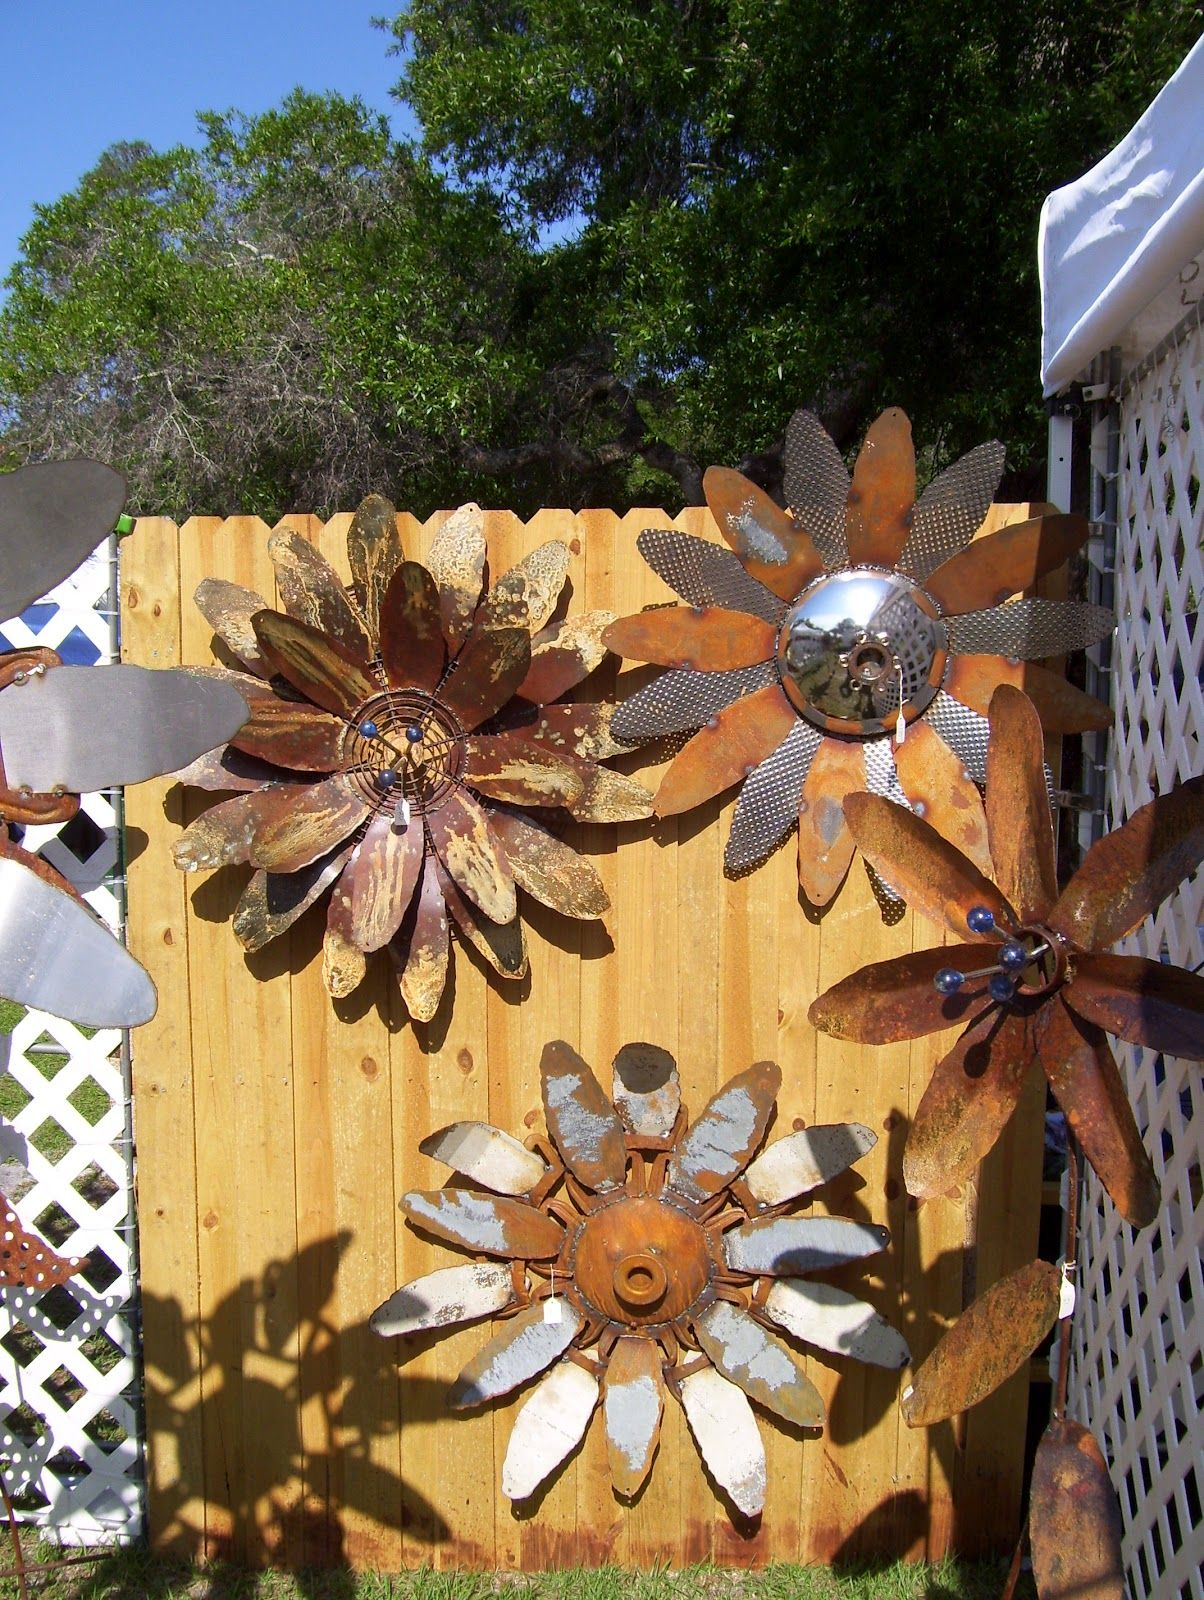 Rustic Rediscovered: Mike's Metal Flowers | For The Home Pertaining To 2 Piece Multiple Layer Metal Flower Wall Decor Sets (Gallery 19 of 30)